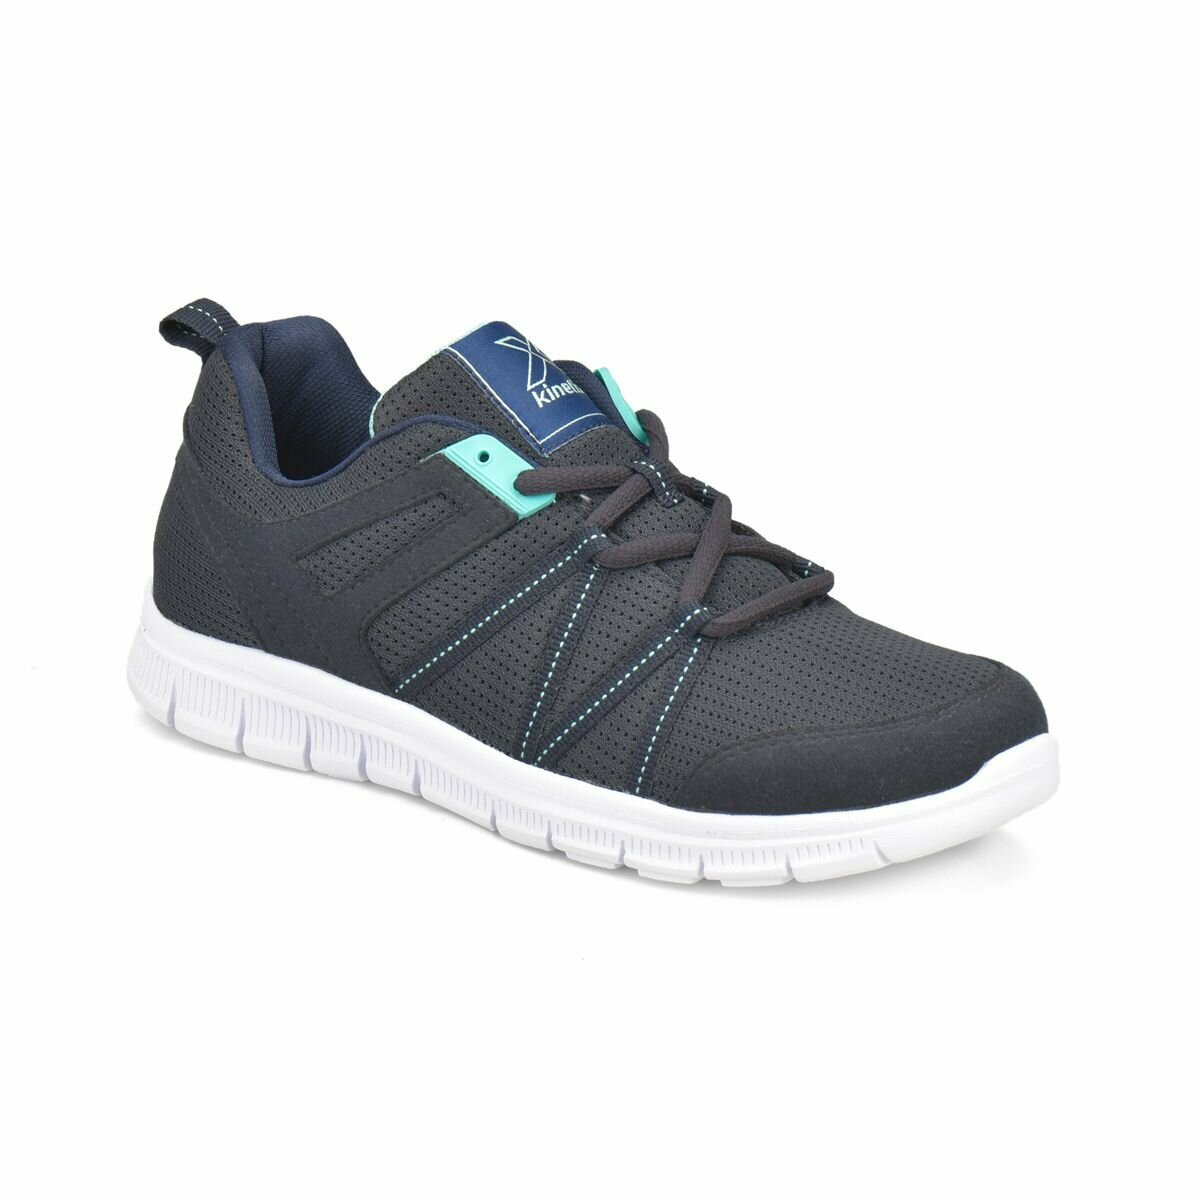 FLO MELINA Navy Blue Women 'S Sneaker Shoes KINETIX